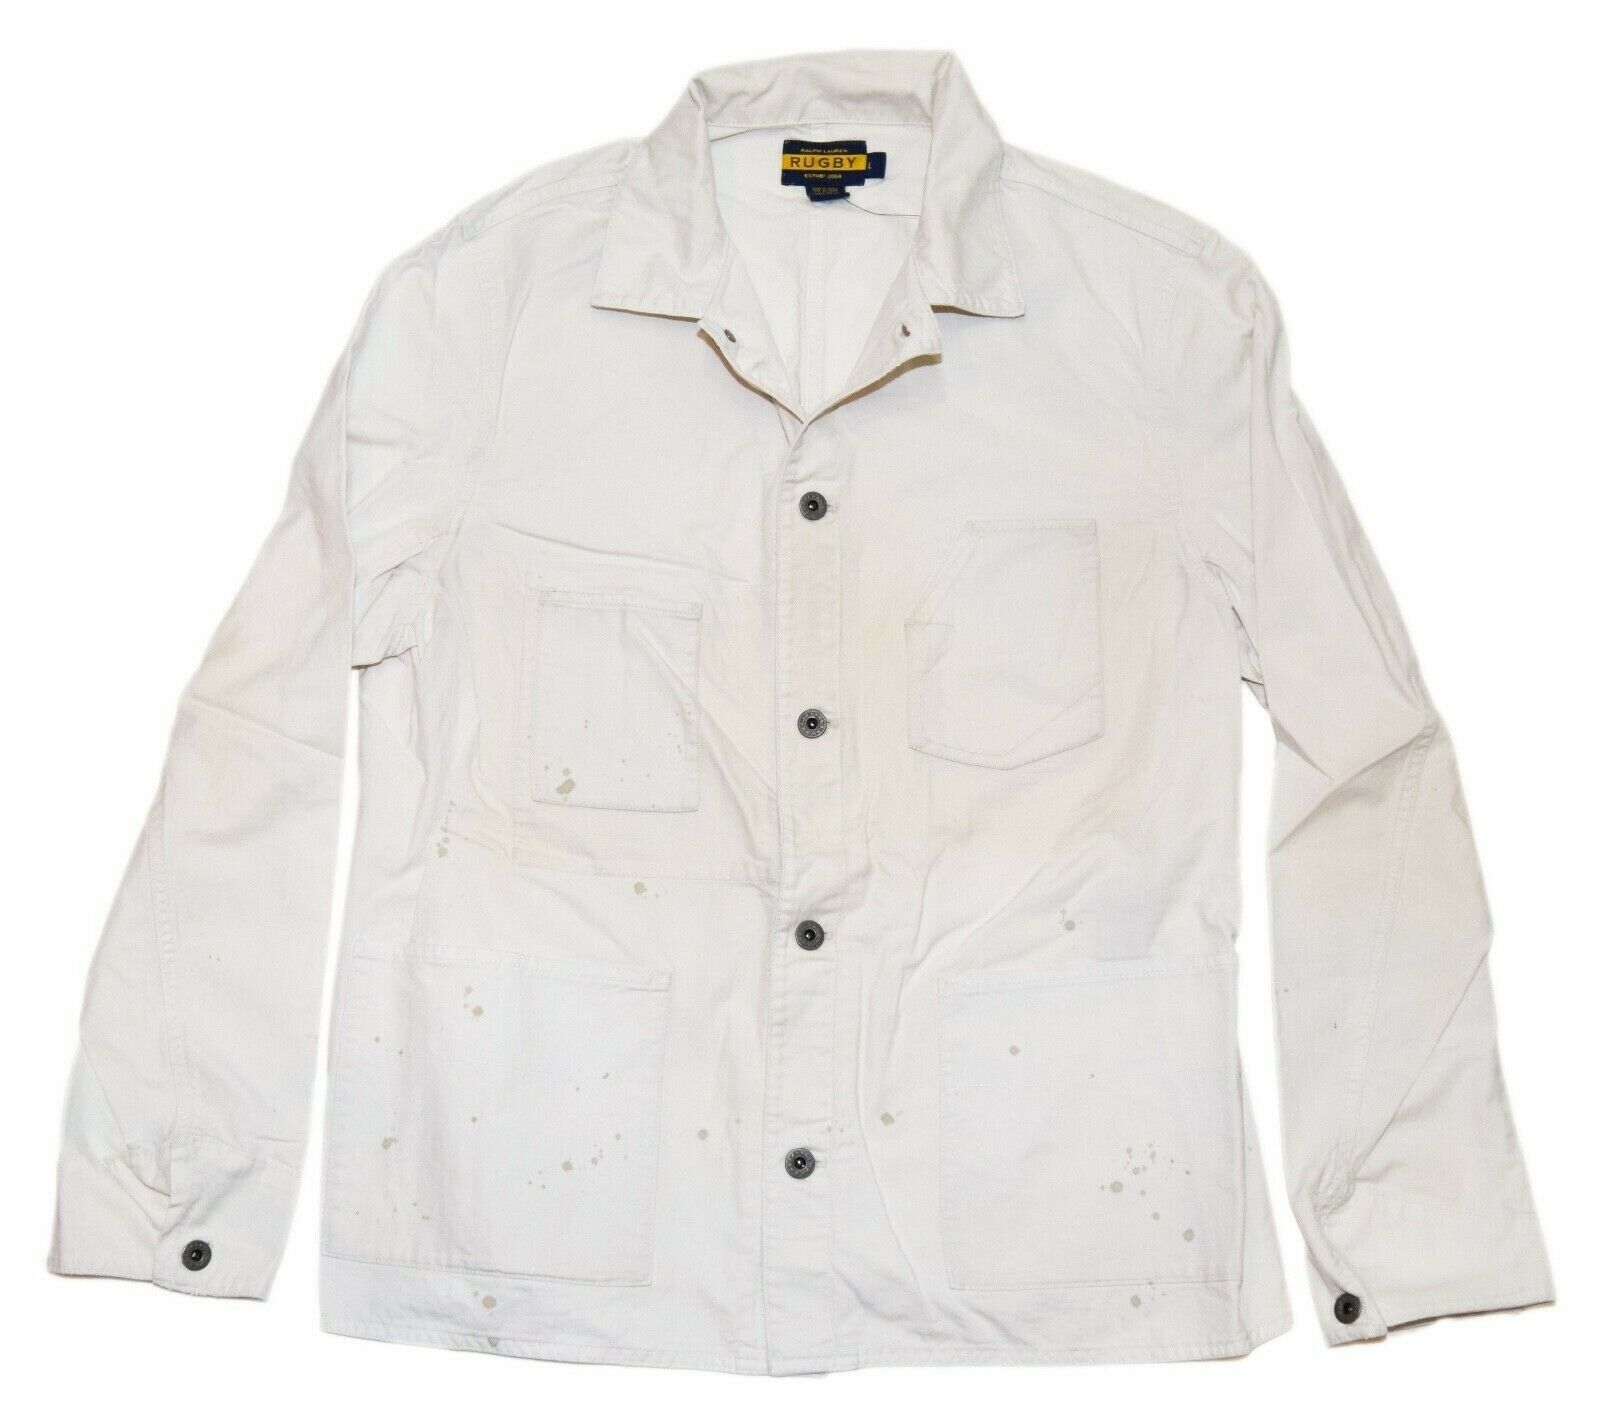 325-polo-ralph-lauren-rugby-mens-lightweight-shirt-jacket-ivory-white-large